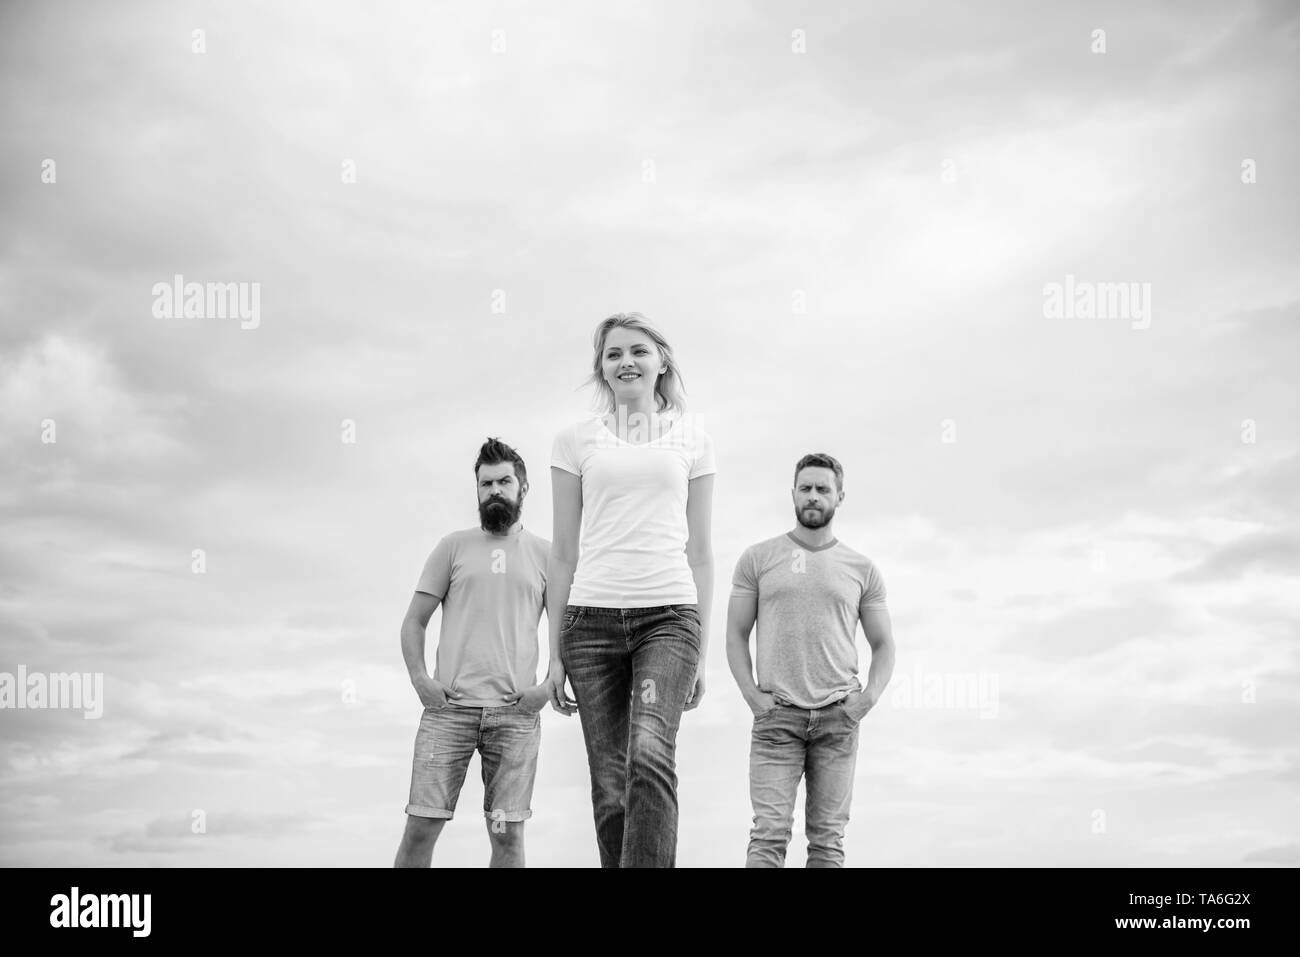 Girl leader qualities possess naturally. Influential women leader. Leadership concept. Woman in front of men feel confident. Moving forward support male team. What makes successful female leader. - Stock Image